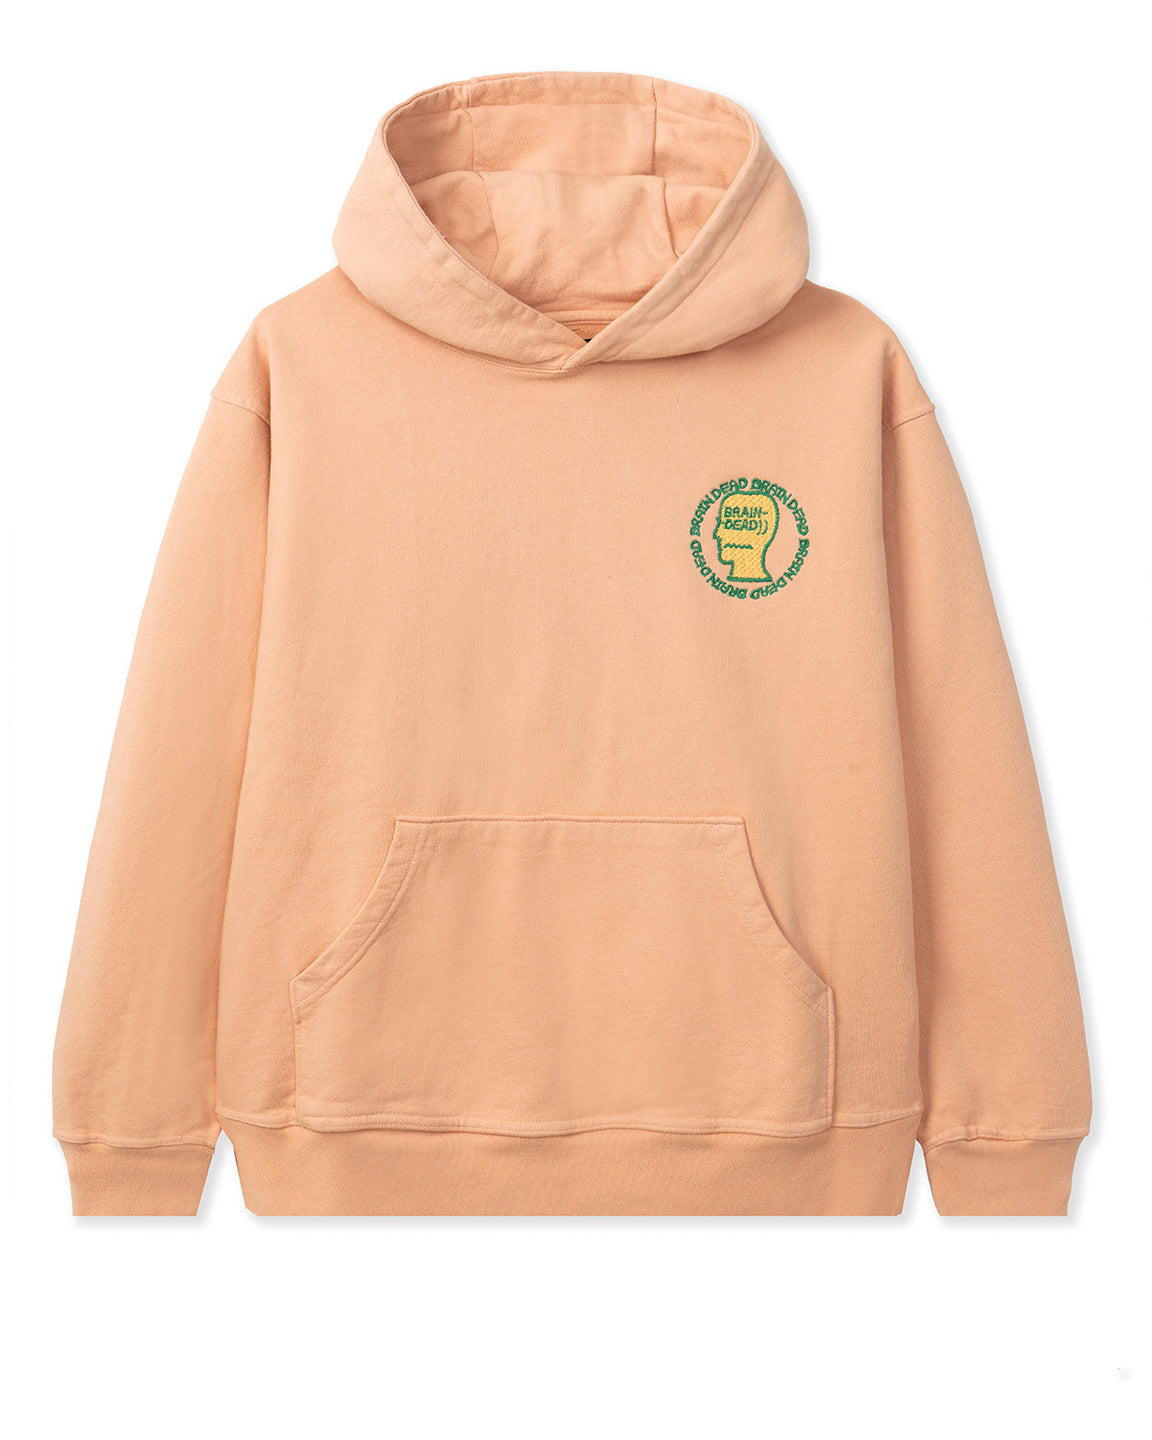 Speed Text Embroidered Logo Head Hooded Sweatshirt - Terracotta